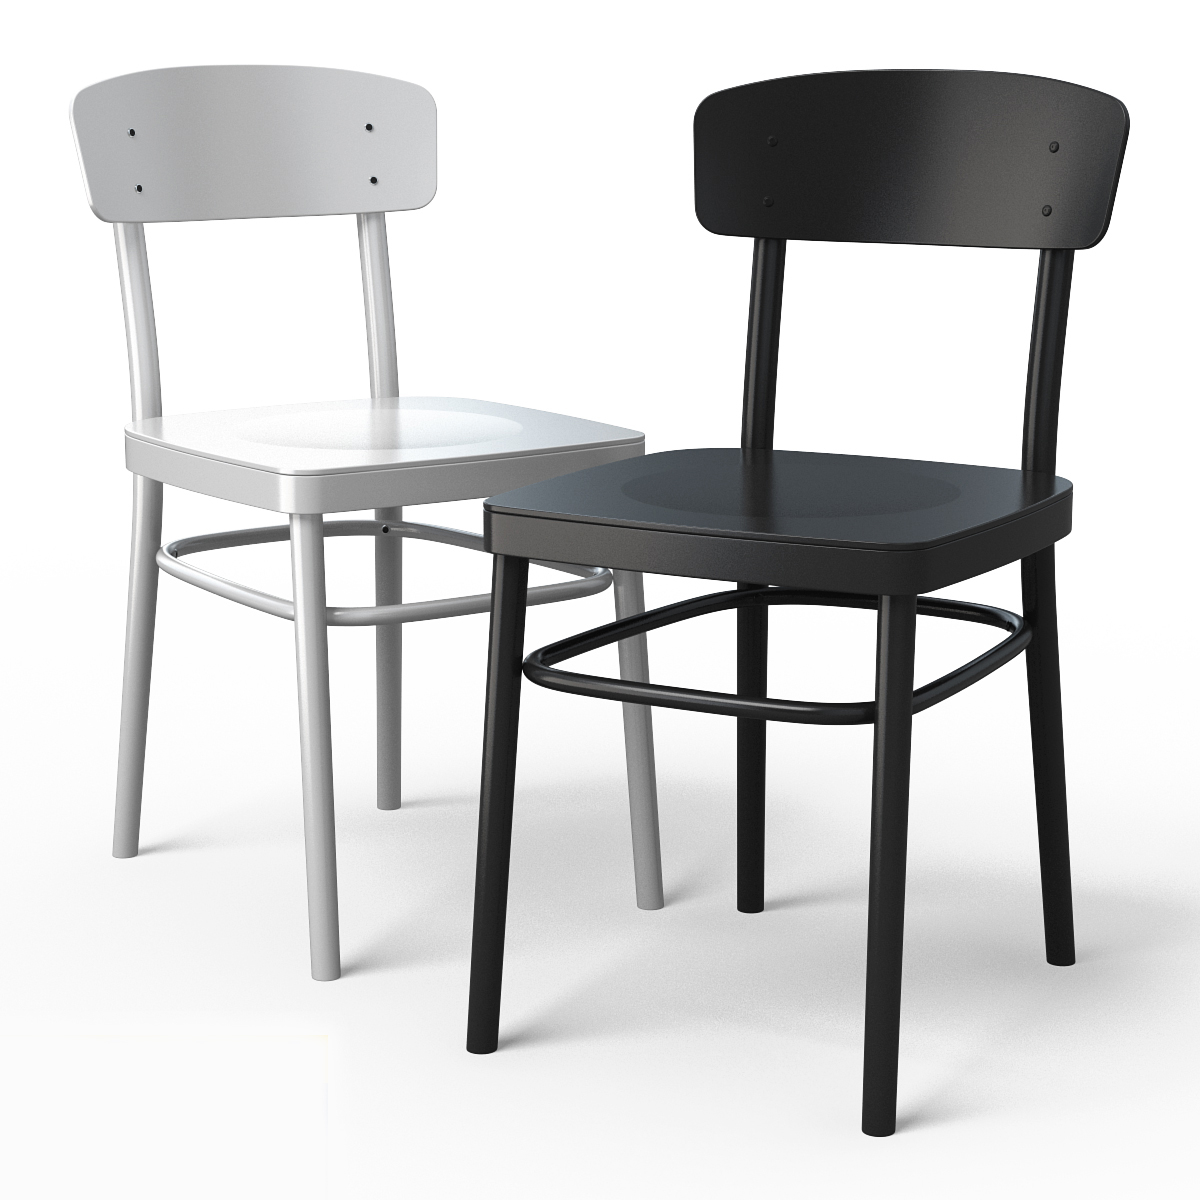 Surprising Idolf Dining Chair Alphanode Cool Chair Designs And Ideas Alphanodeonline